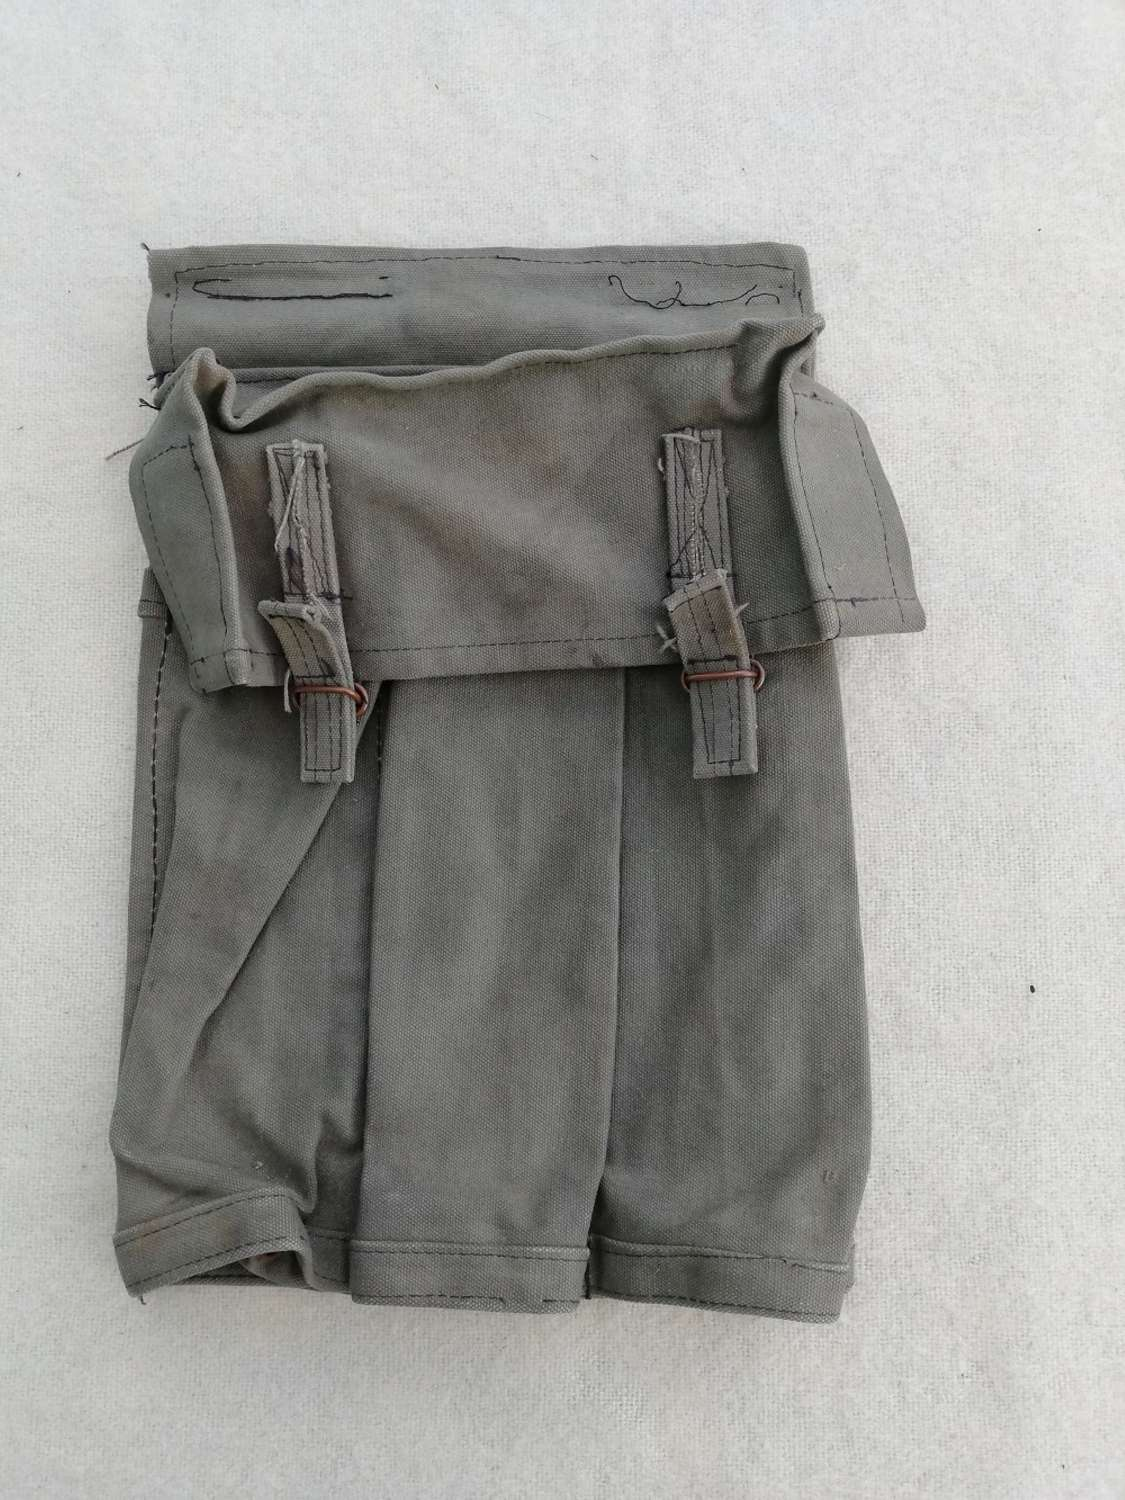 Post-WW2 Custom Made Sterling Submachine Gun Magazine Pouch